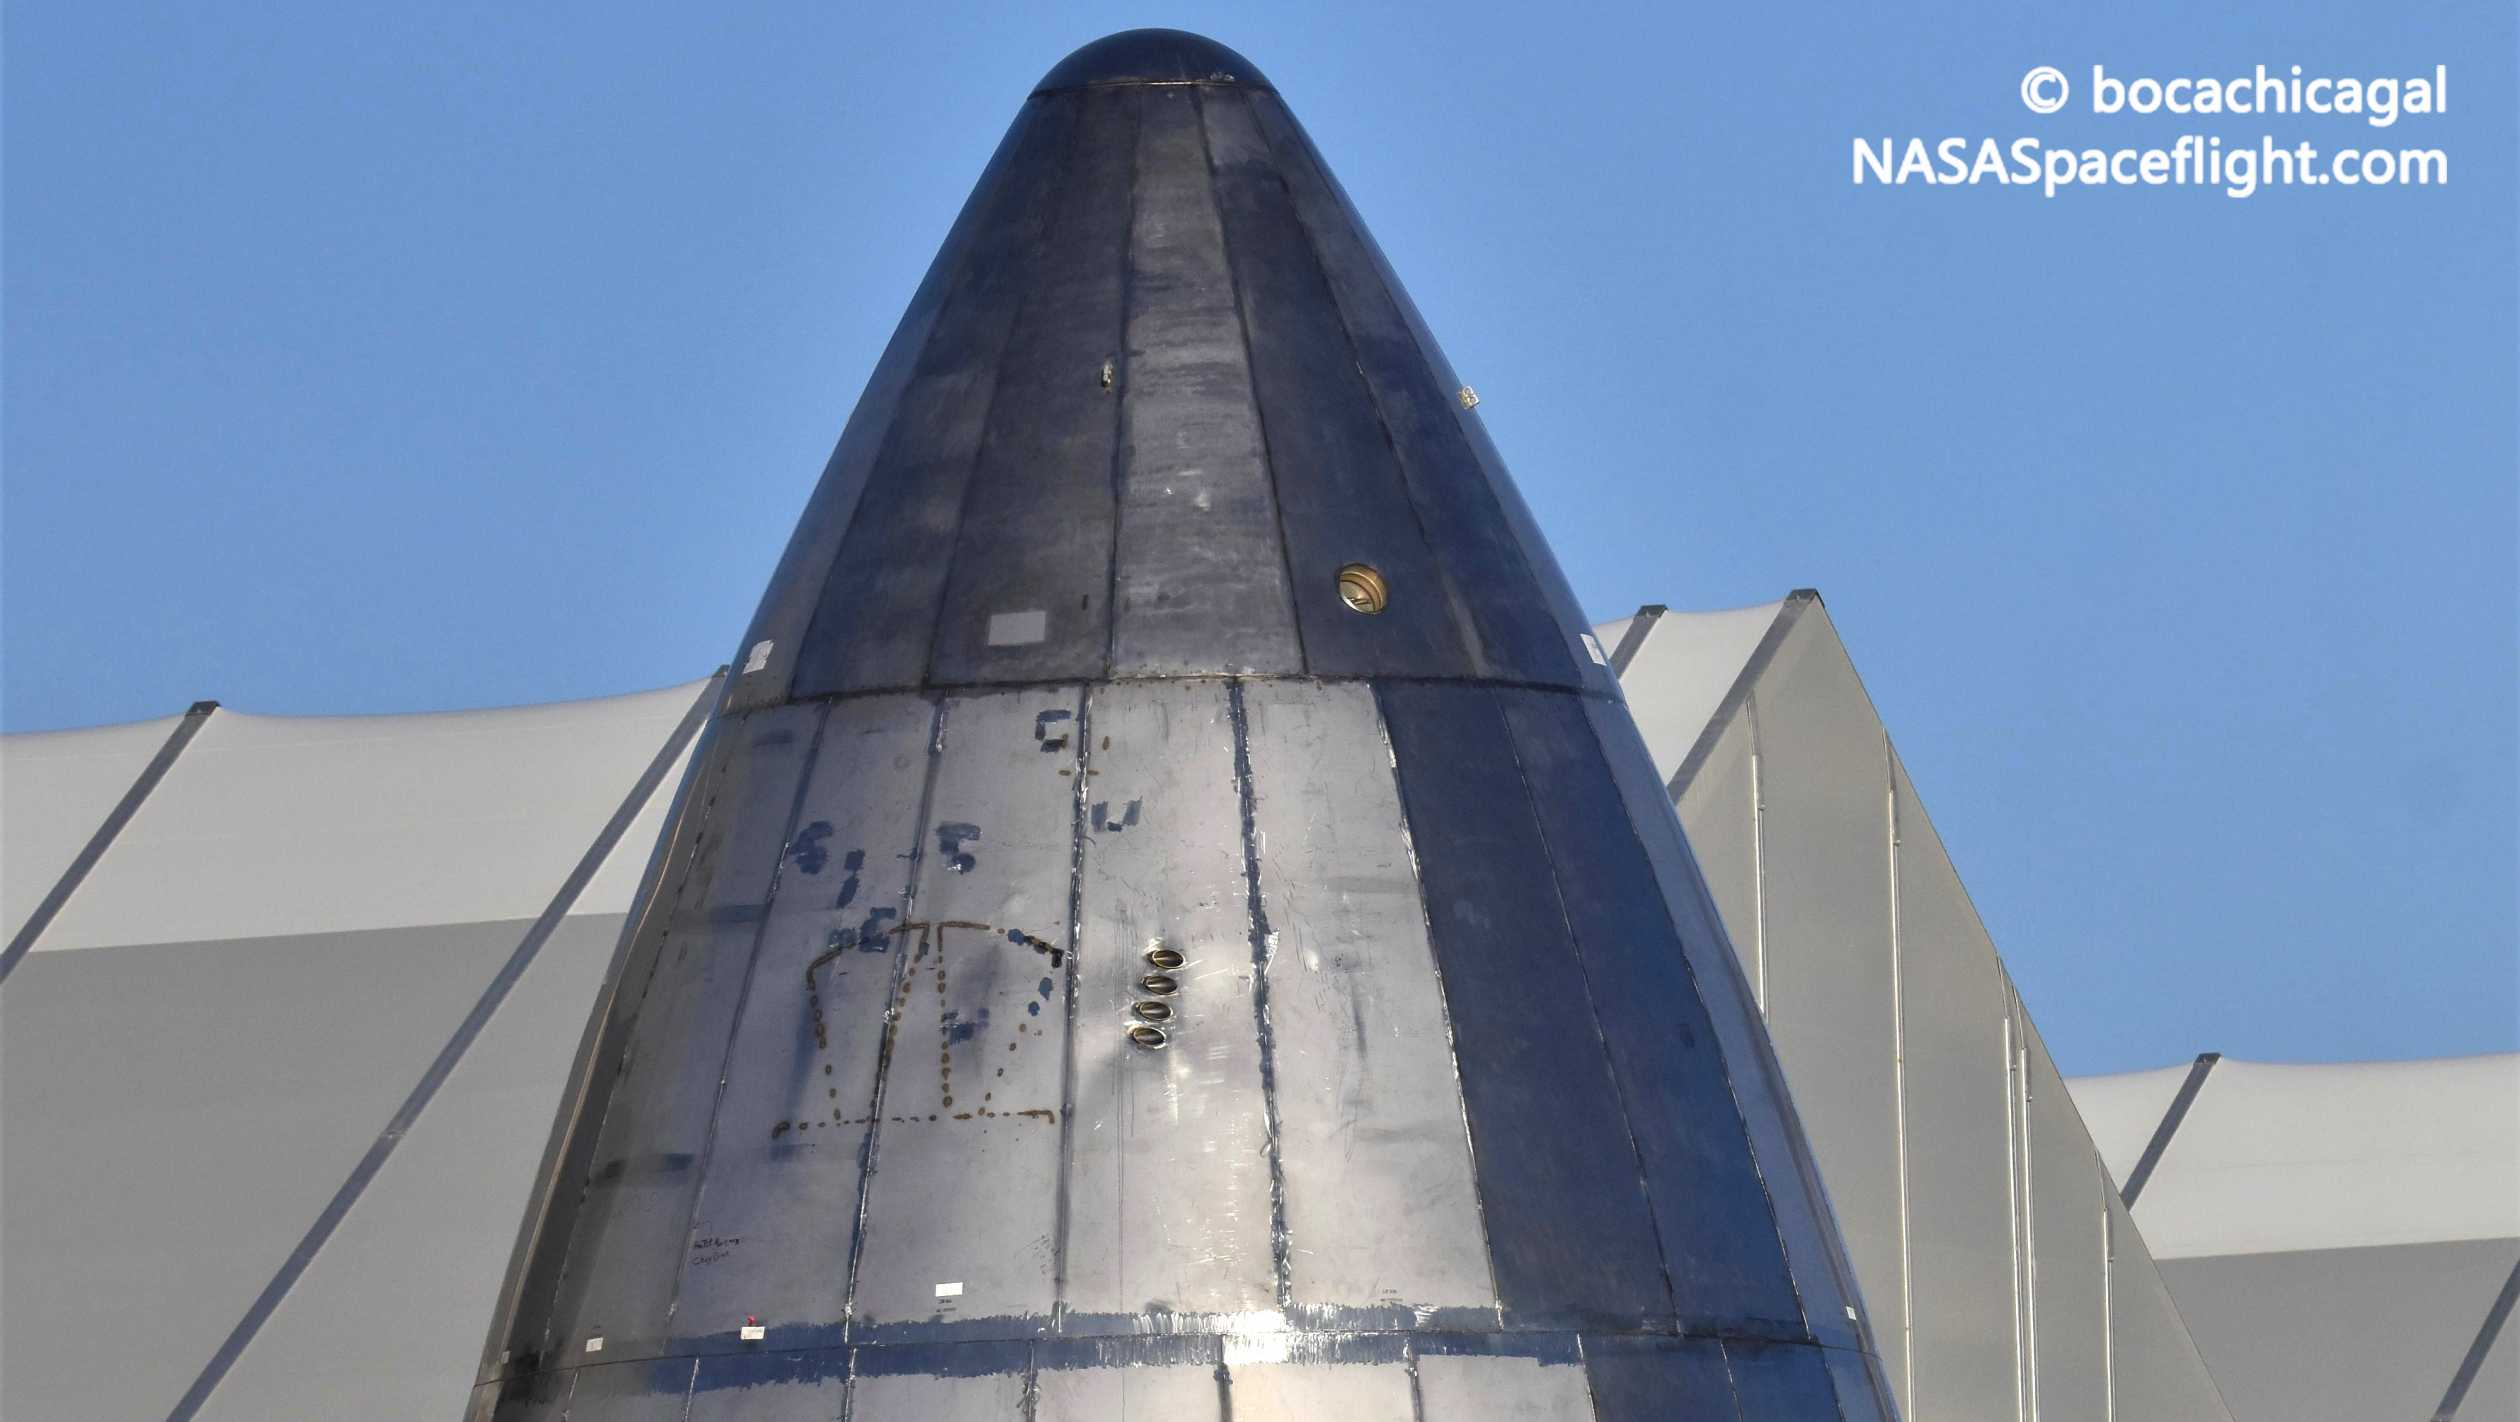 Starship Boca Chica 051820 (NASASpaceflight – bocachicagal) SN5 nosecone 1 crop (c)